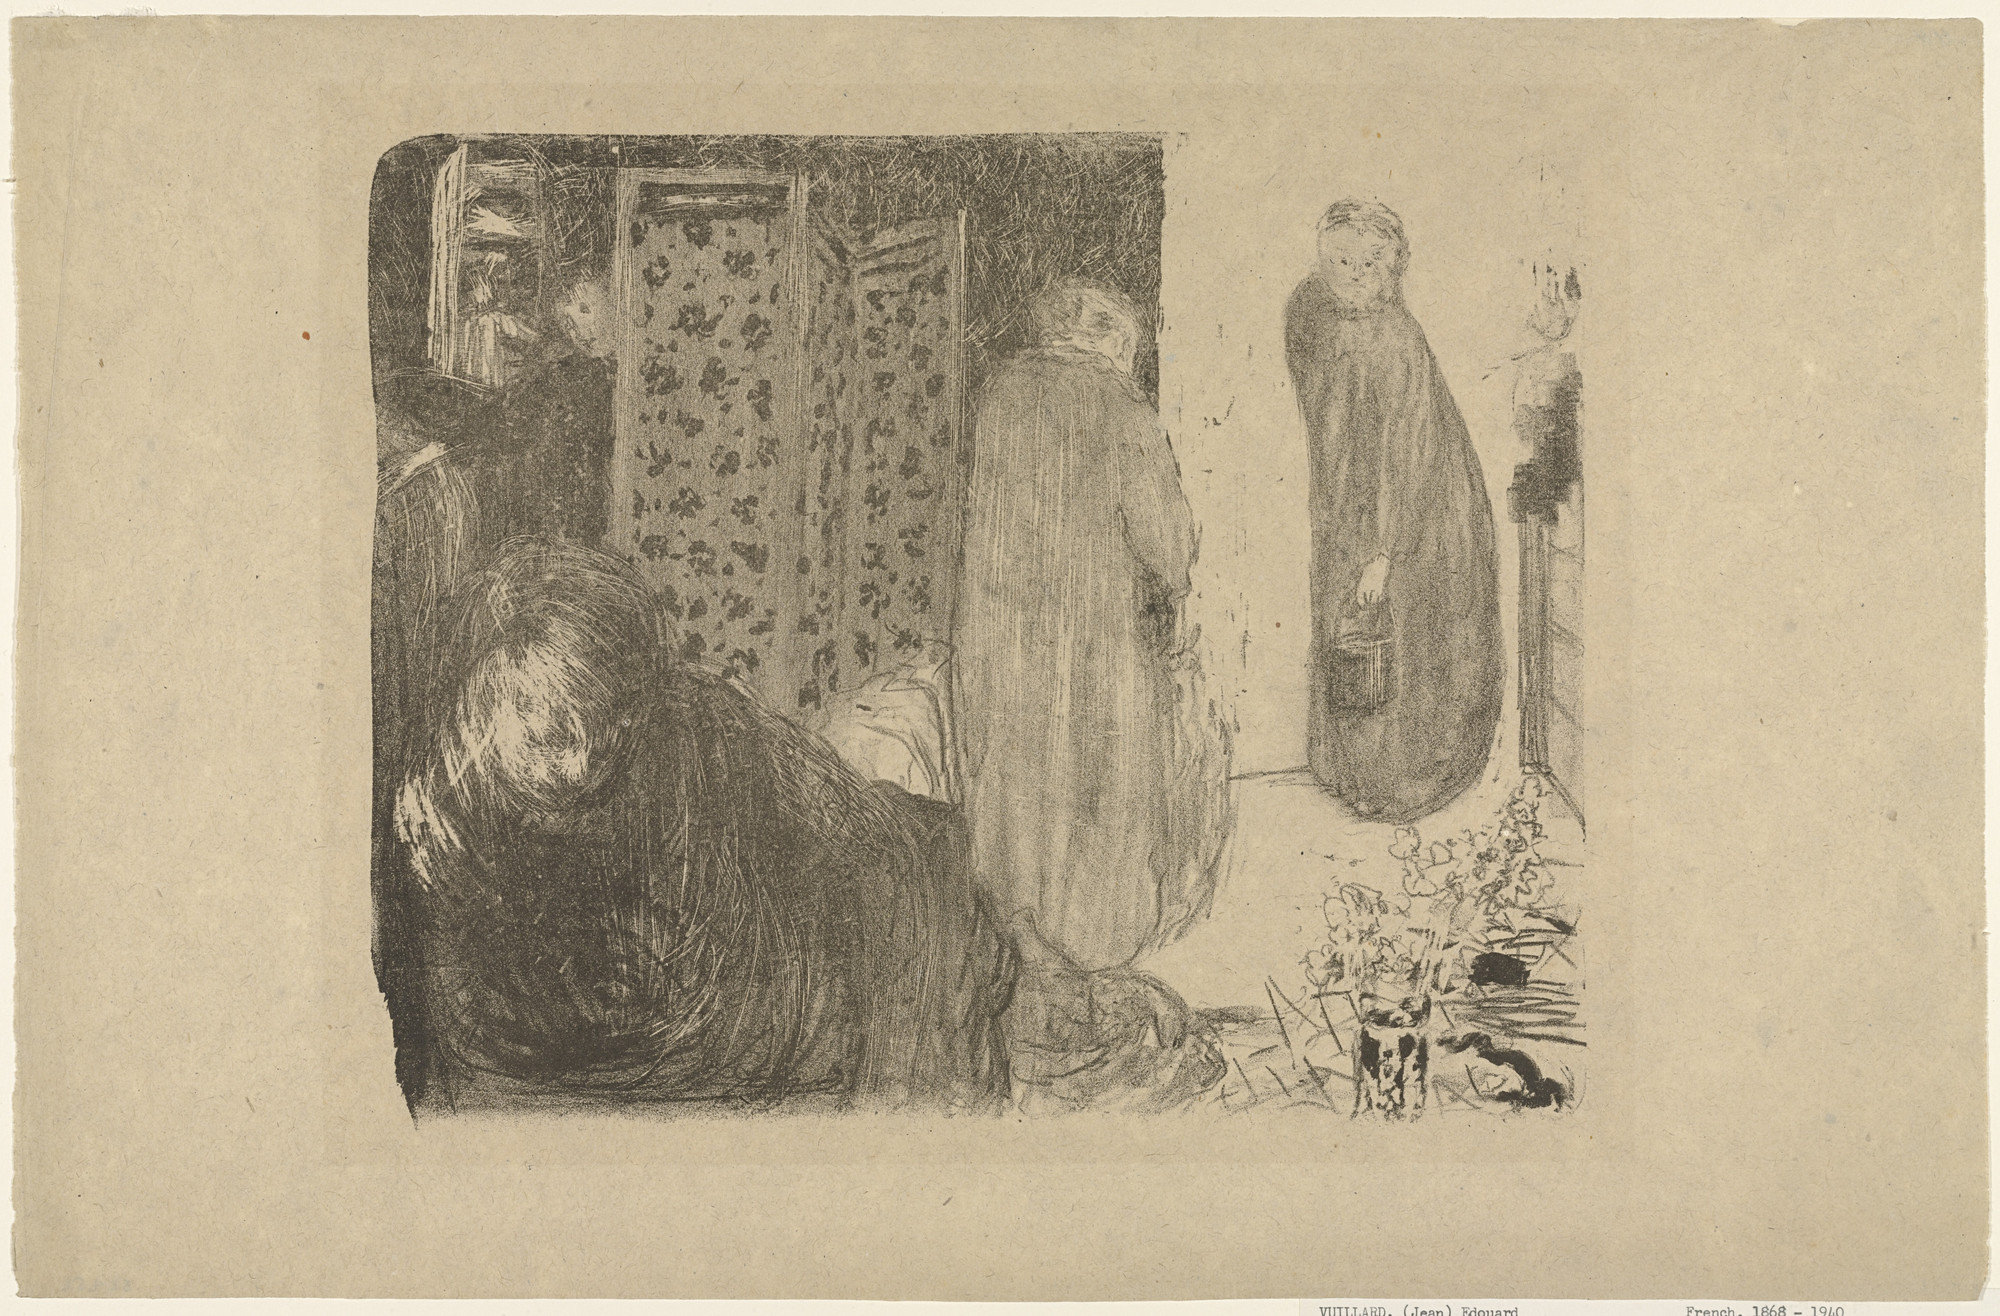 Édouard Vuillard. Interior with a Screen (L'Intérieur au paravent). c. 1893